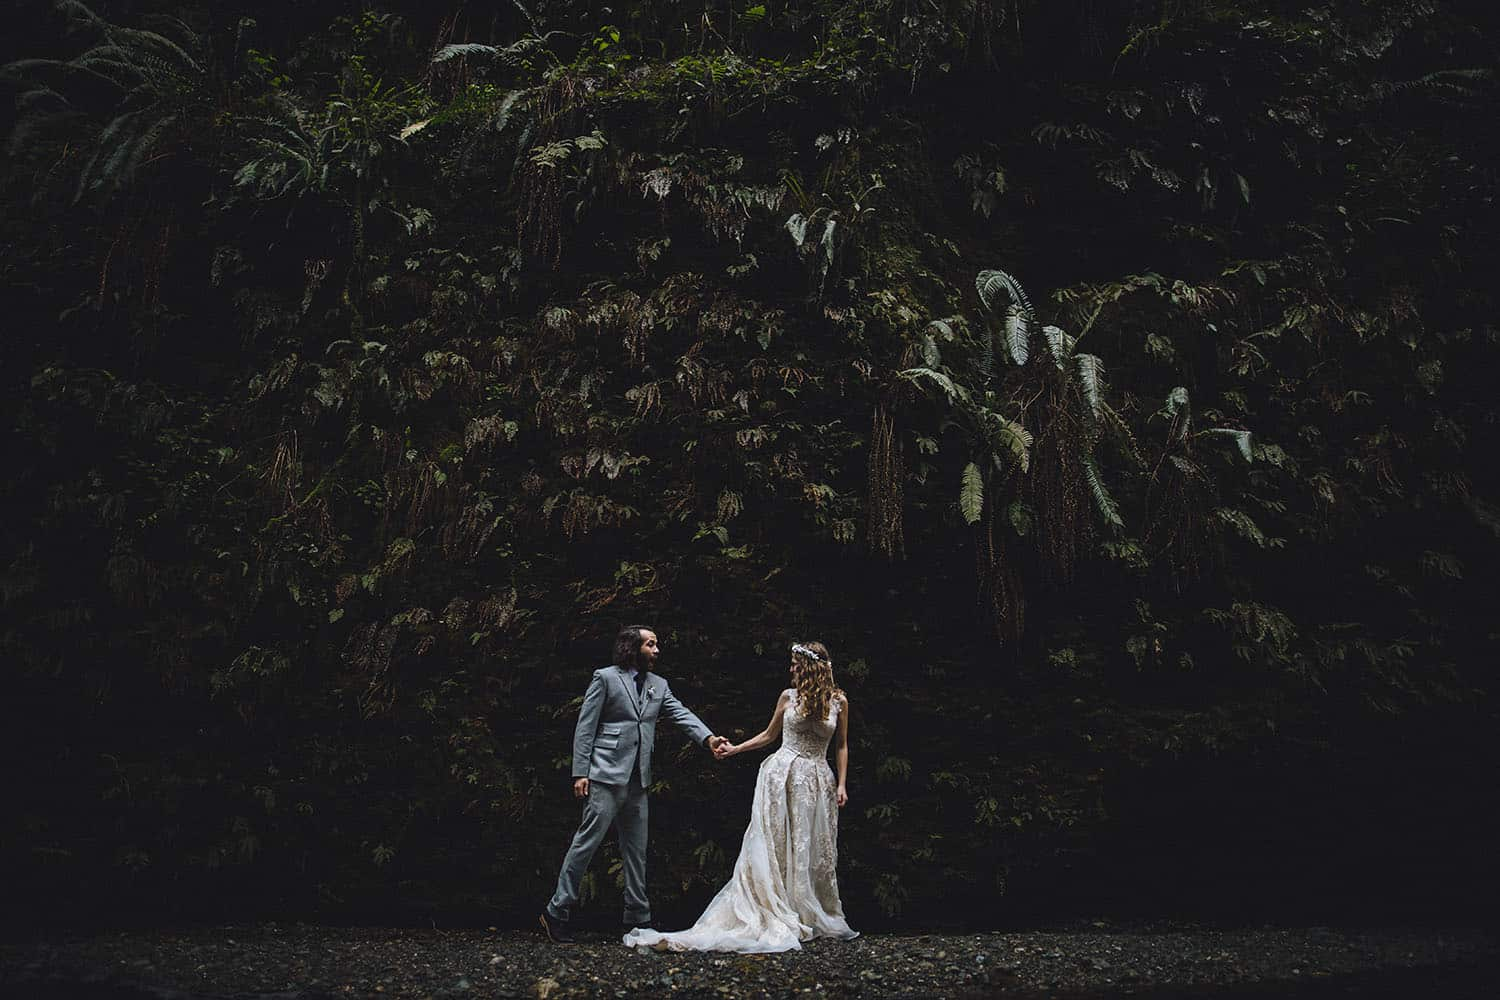 A bride leads her groom by the hand past a cliffside covered in ferns.